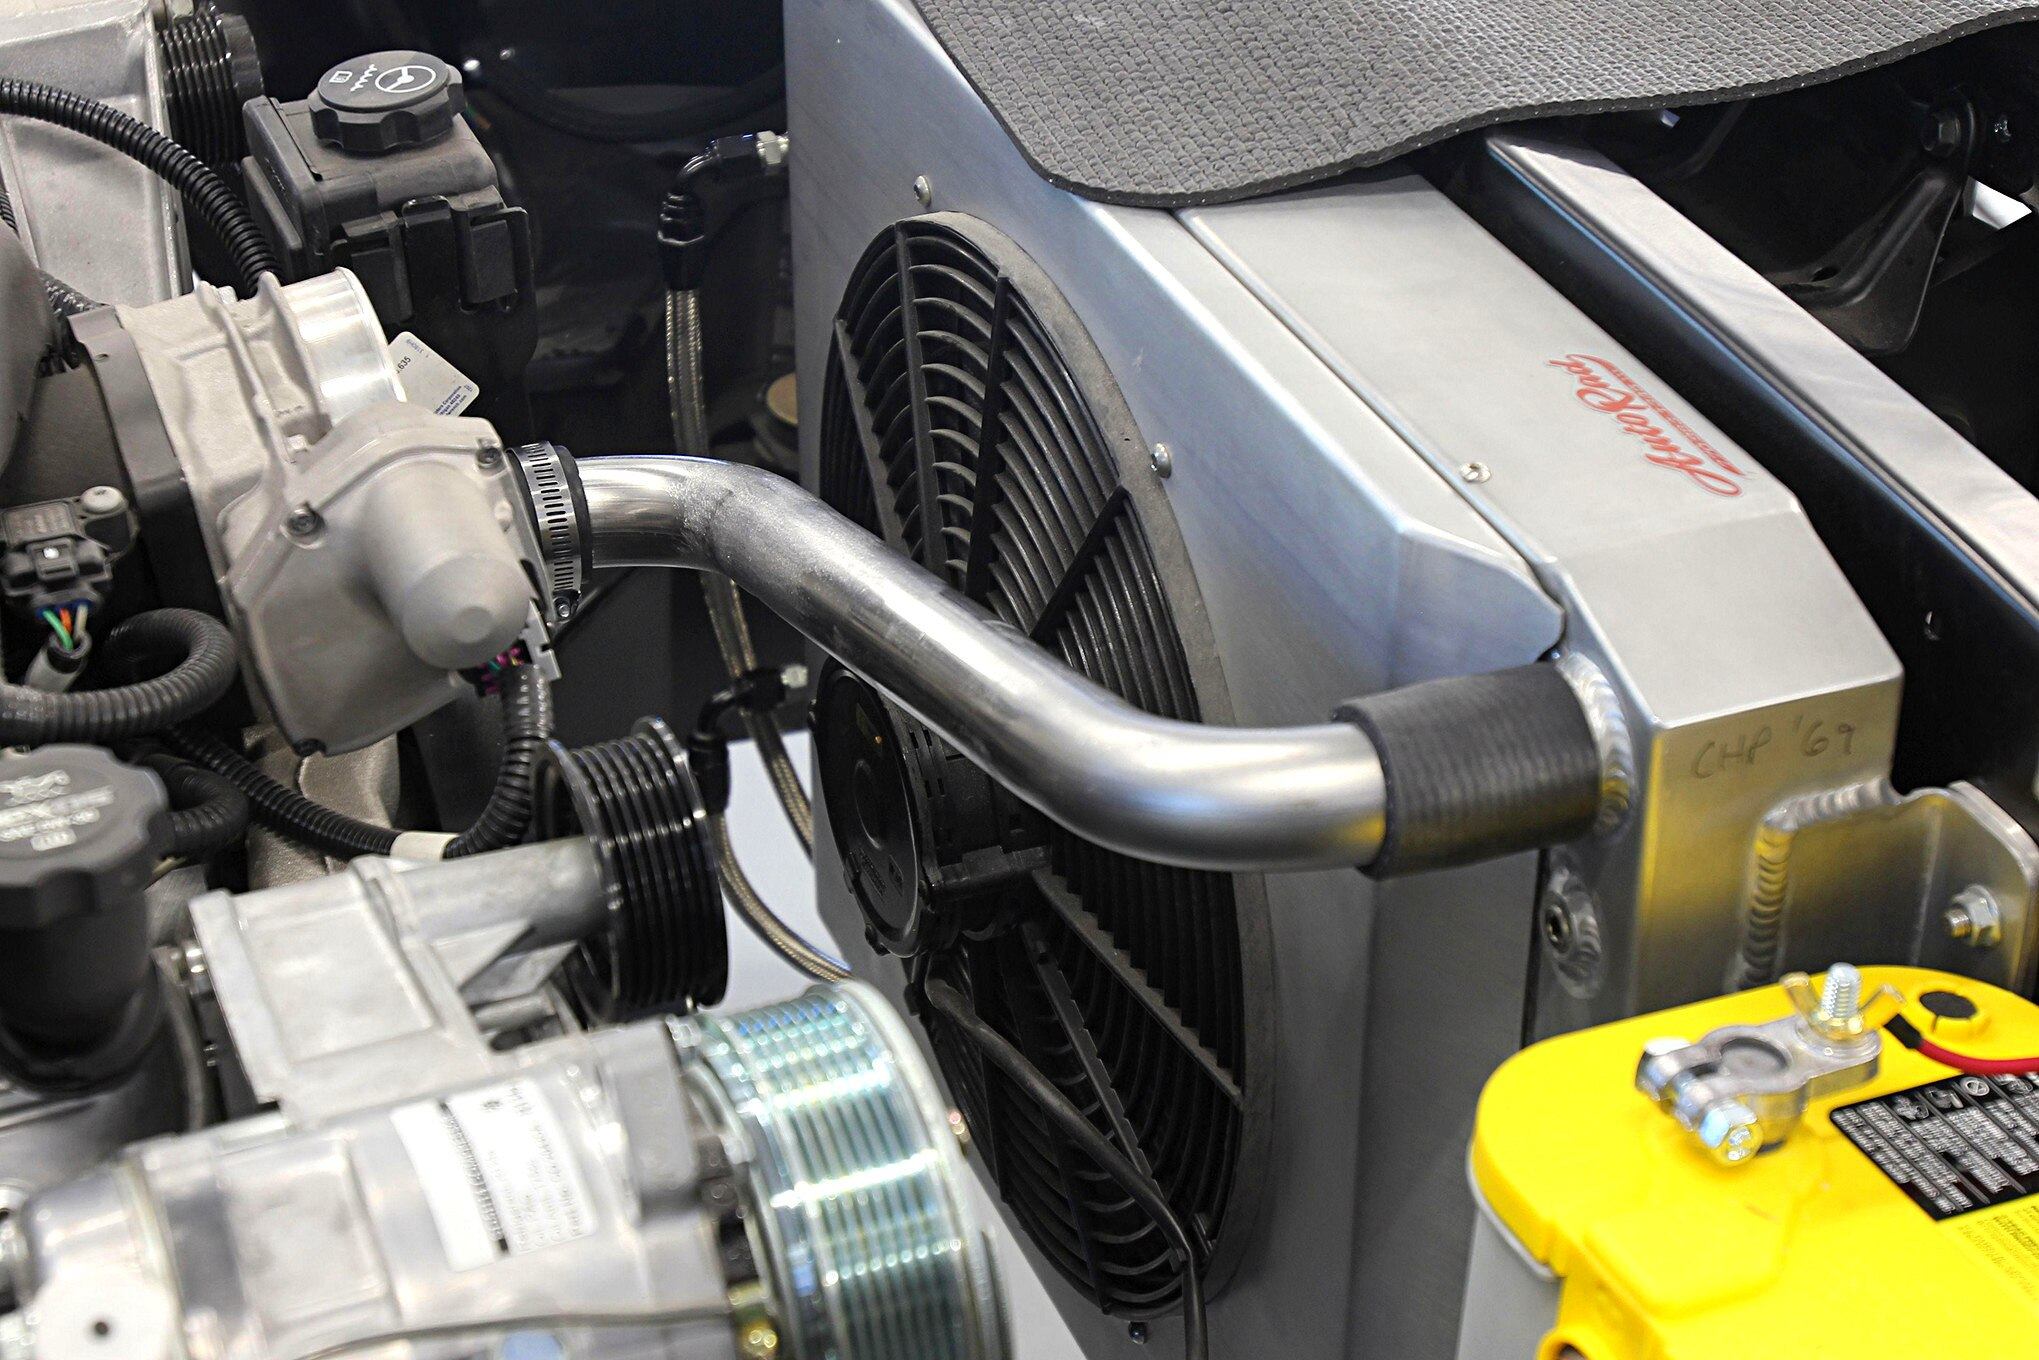 How to make custom coolant lines using exhaust tubing